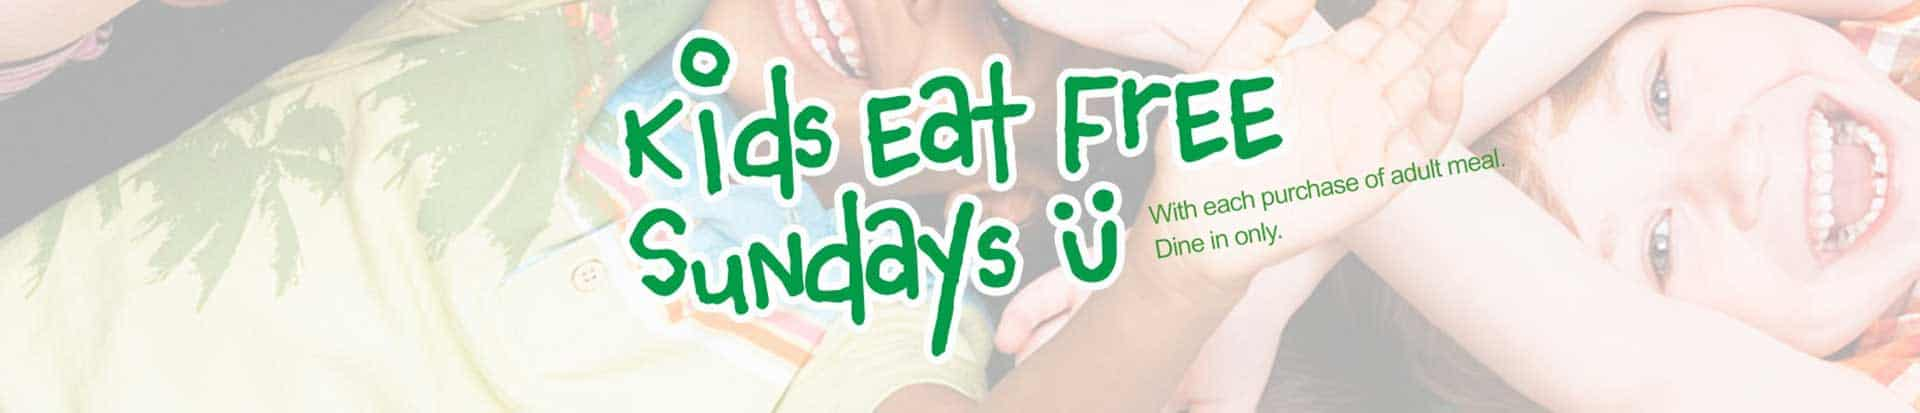 Kids eat free Sunday - EVOS Feel Great Food